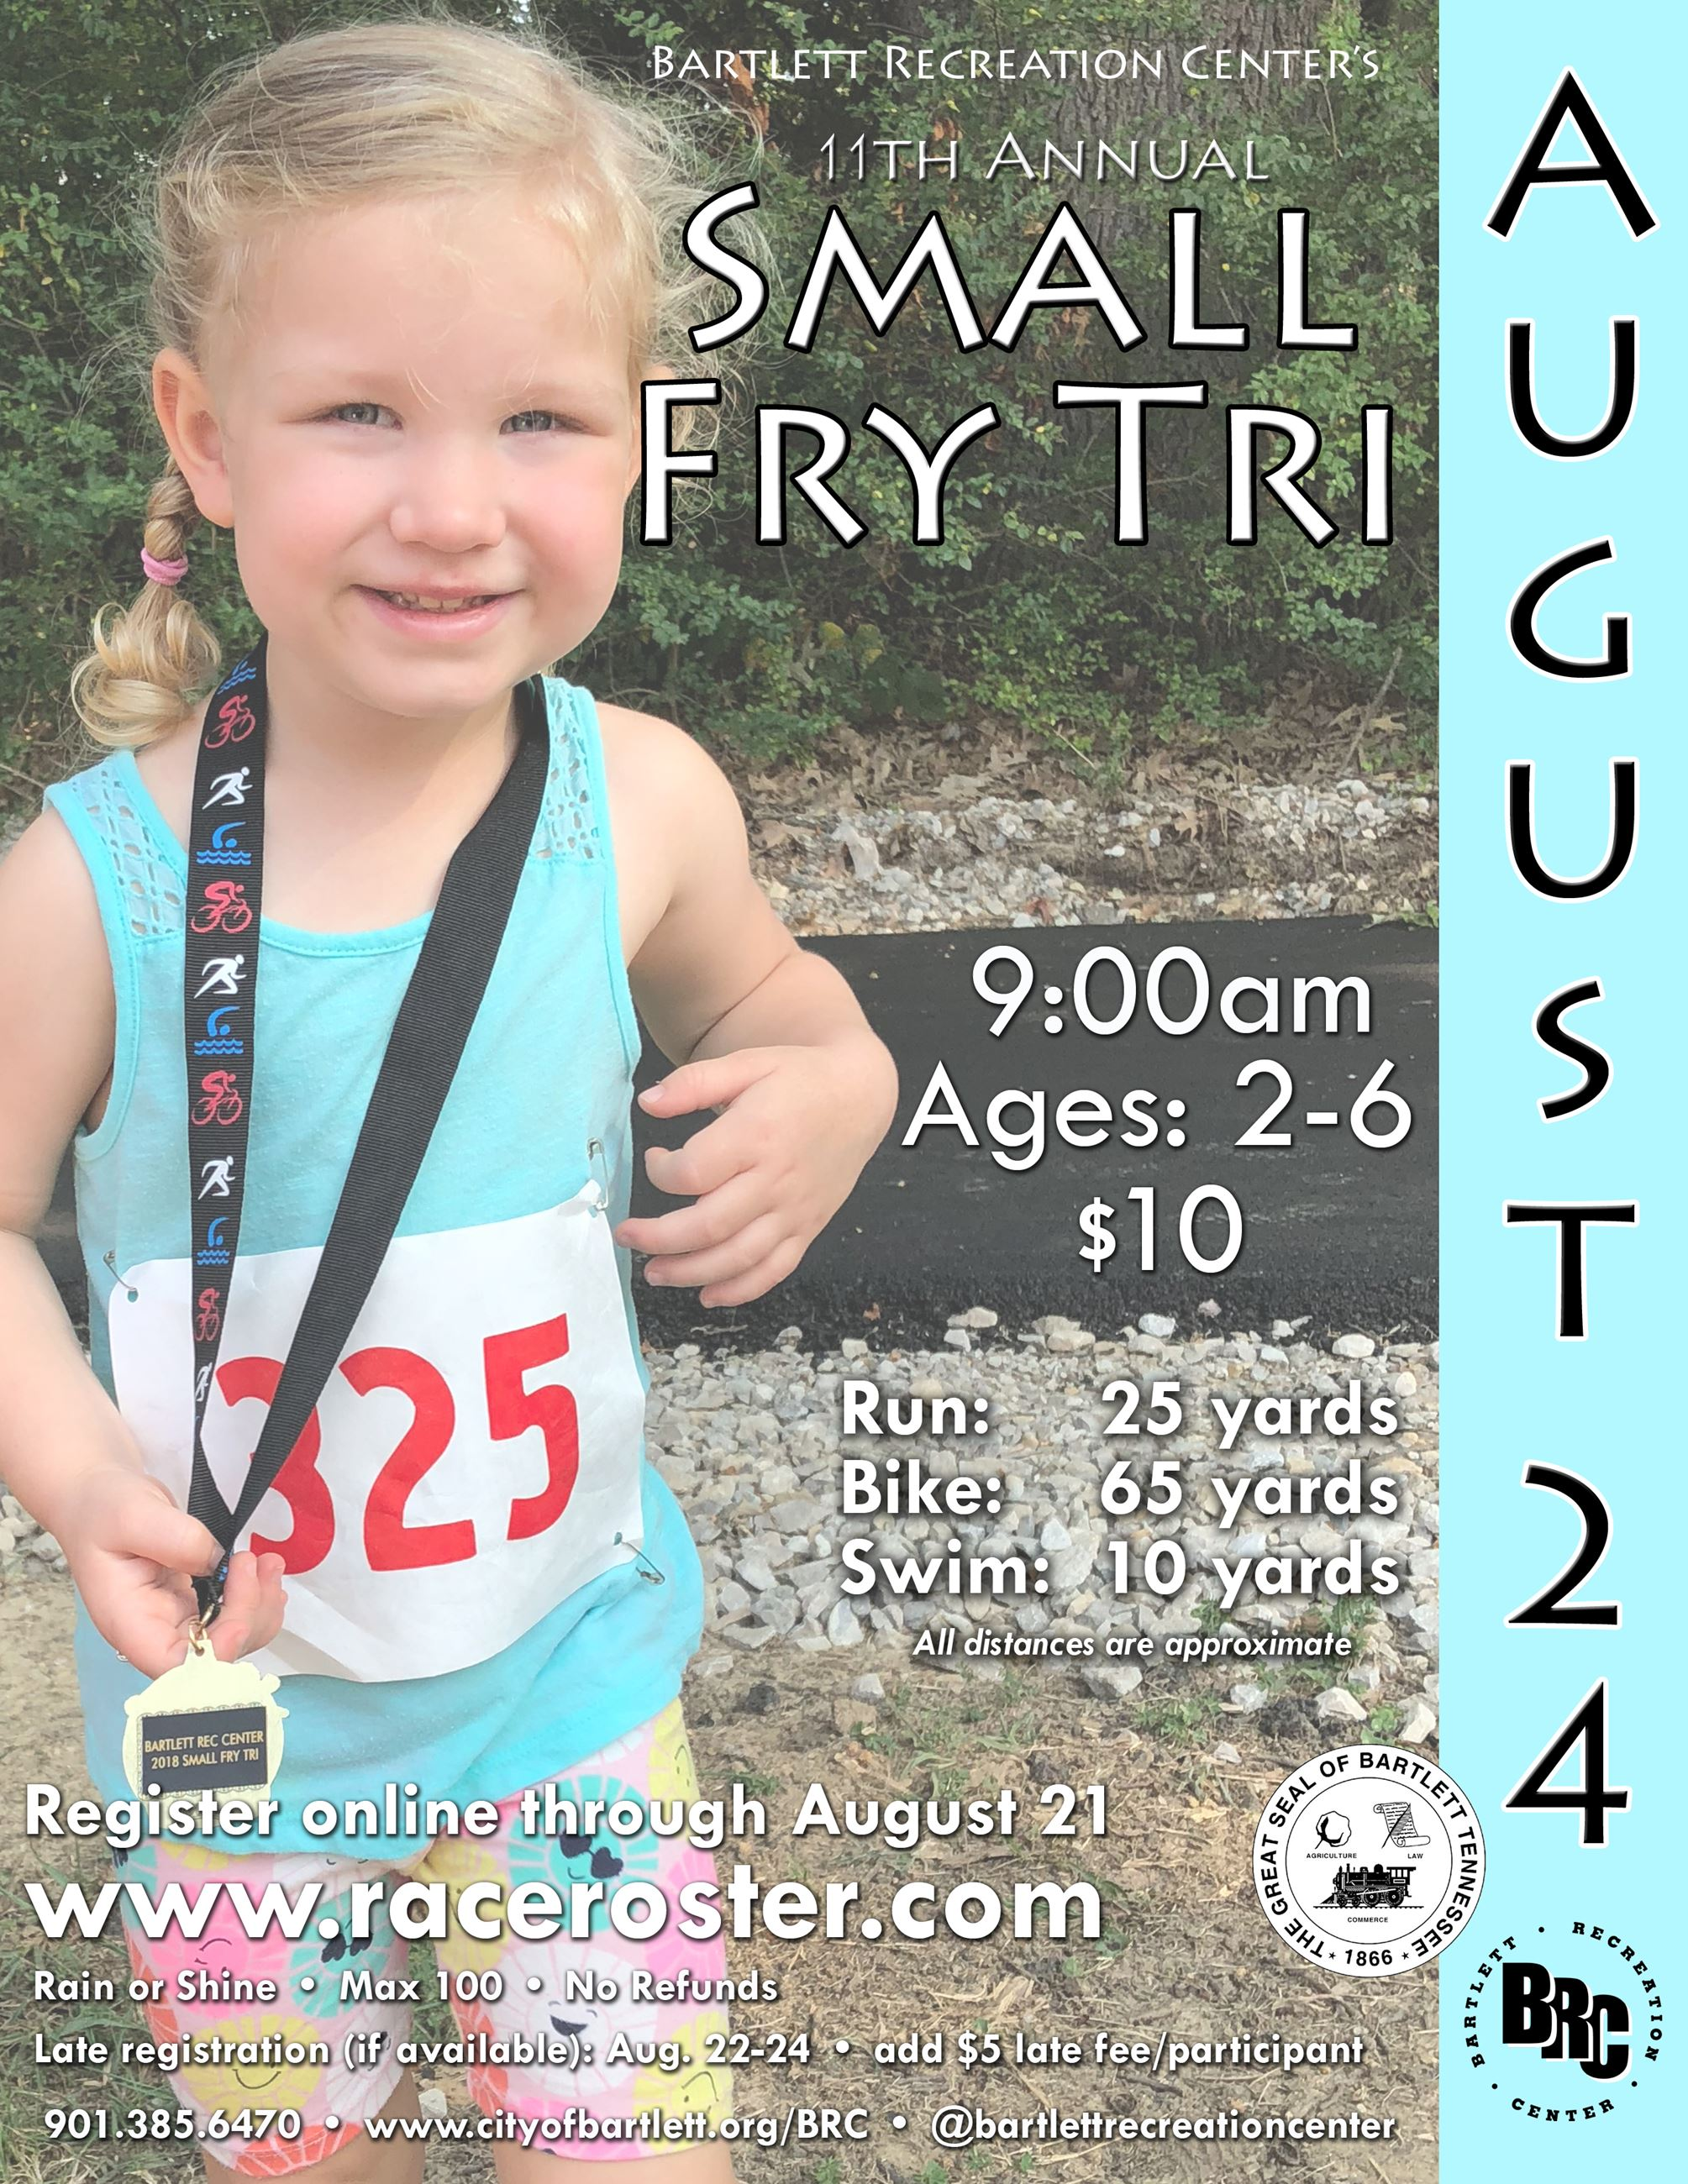 Small Fry Tri 2019